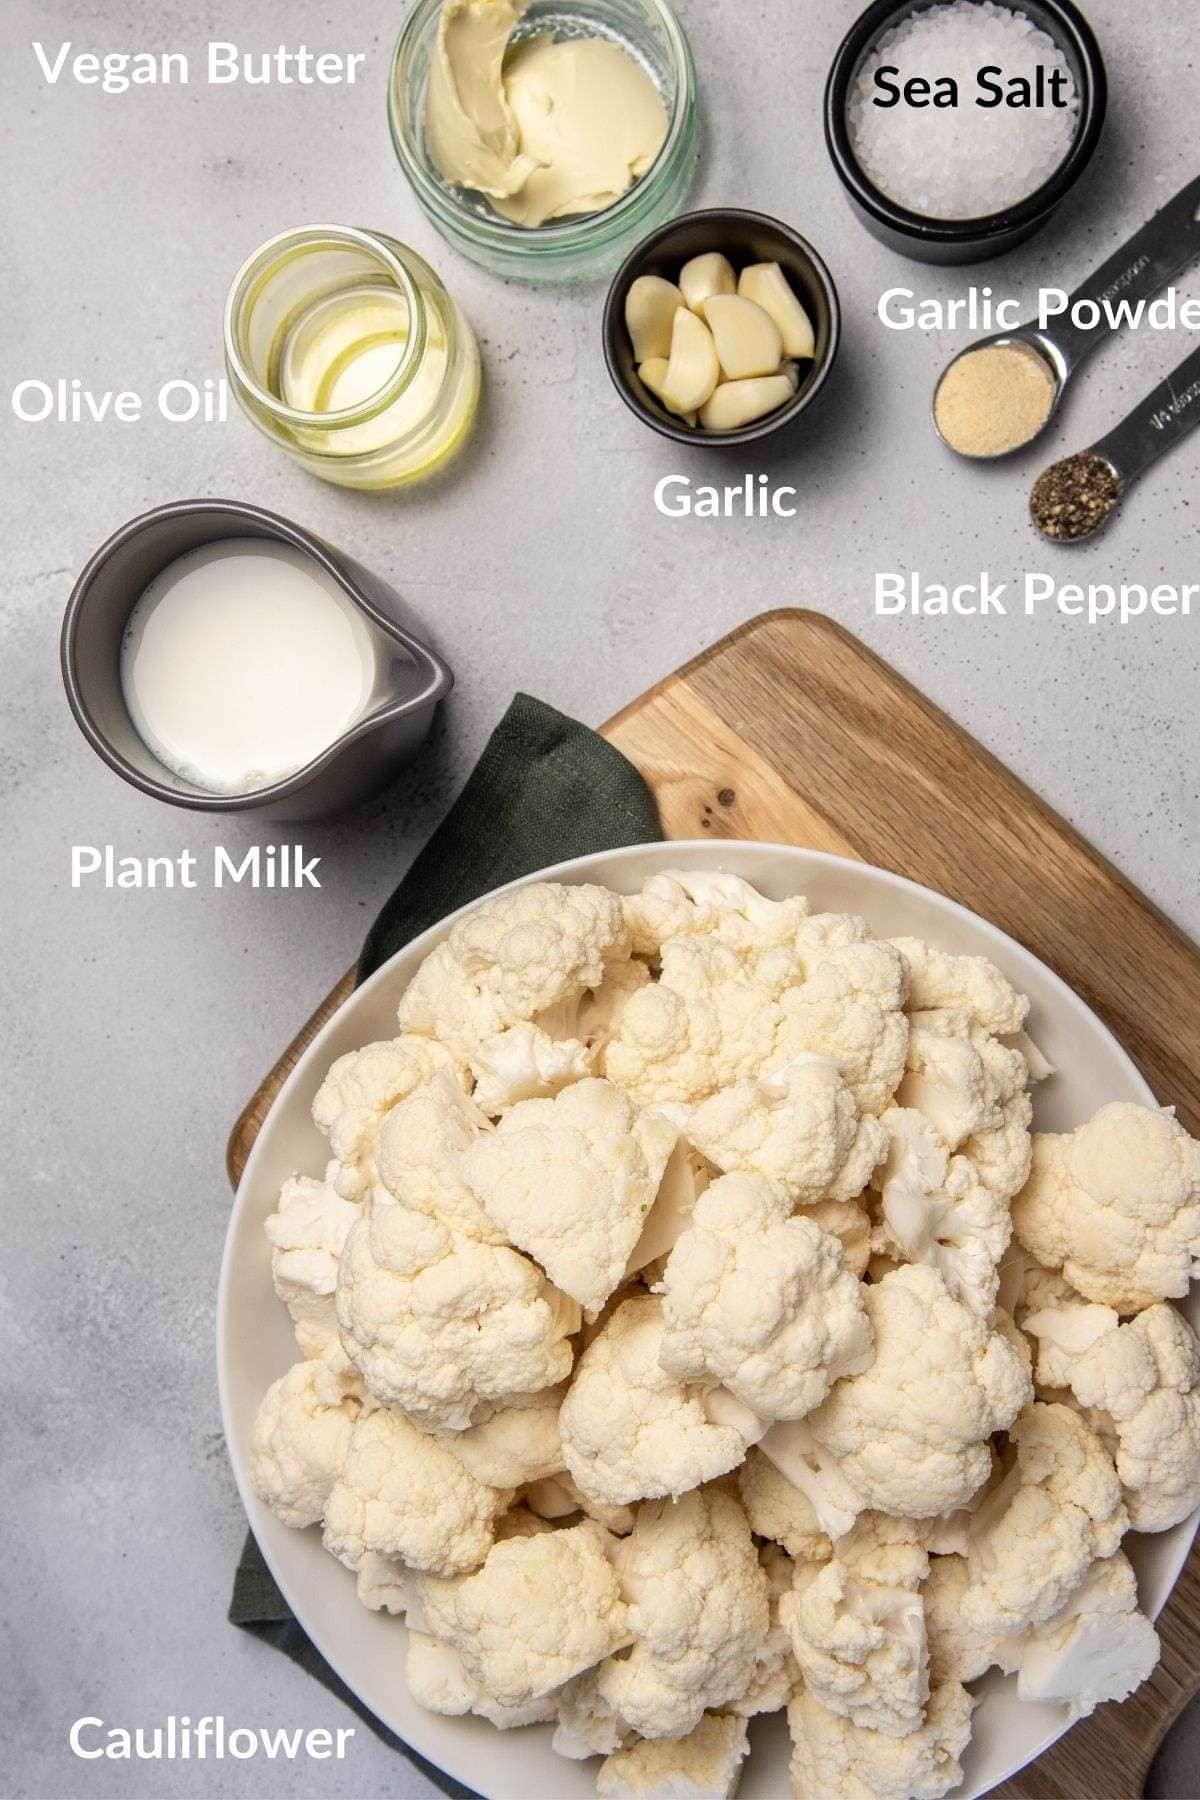 ingredients for cauliflower mashed potatoes recipe